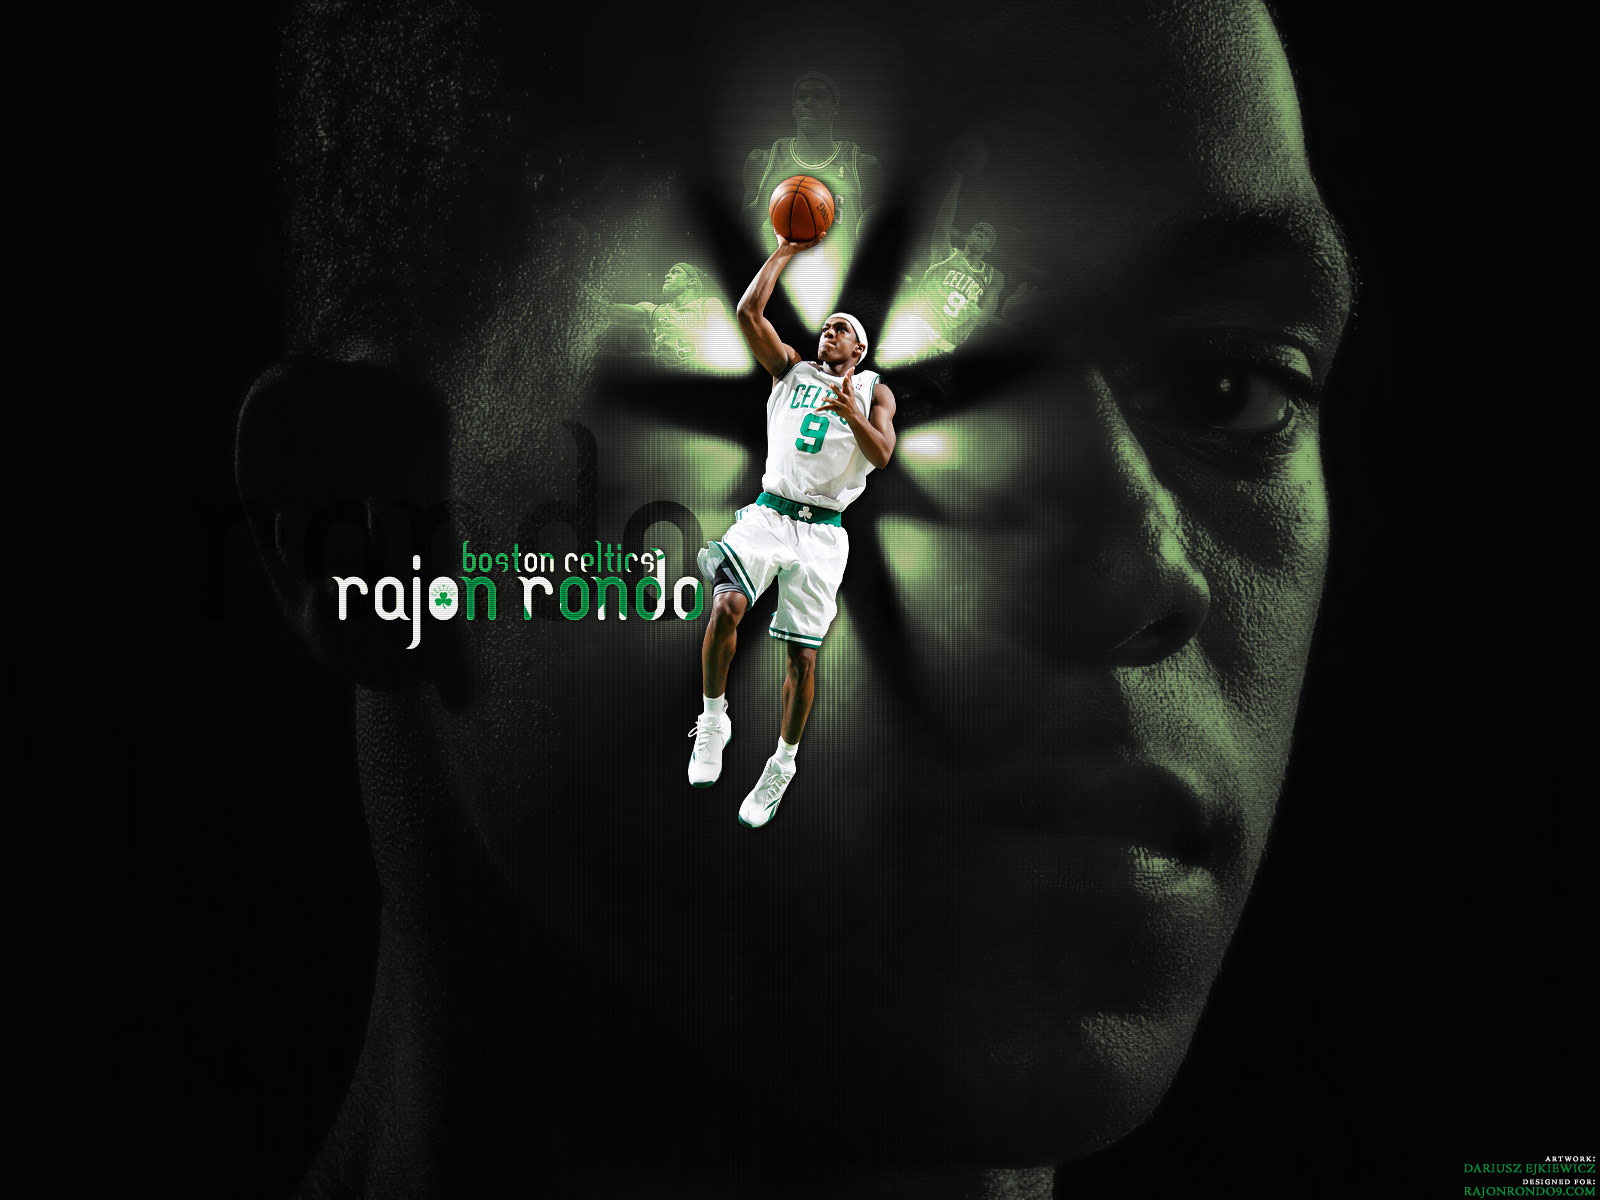 Rajon Rondo - Basketball Wallpapers